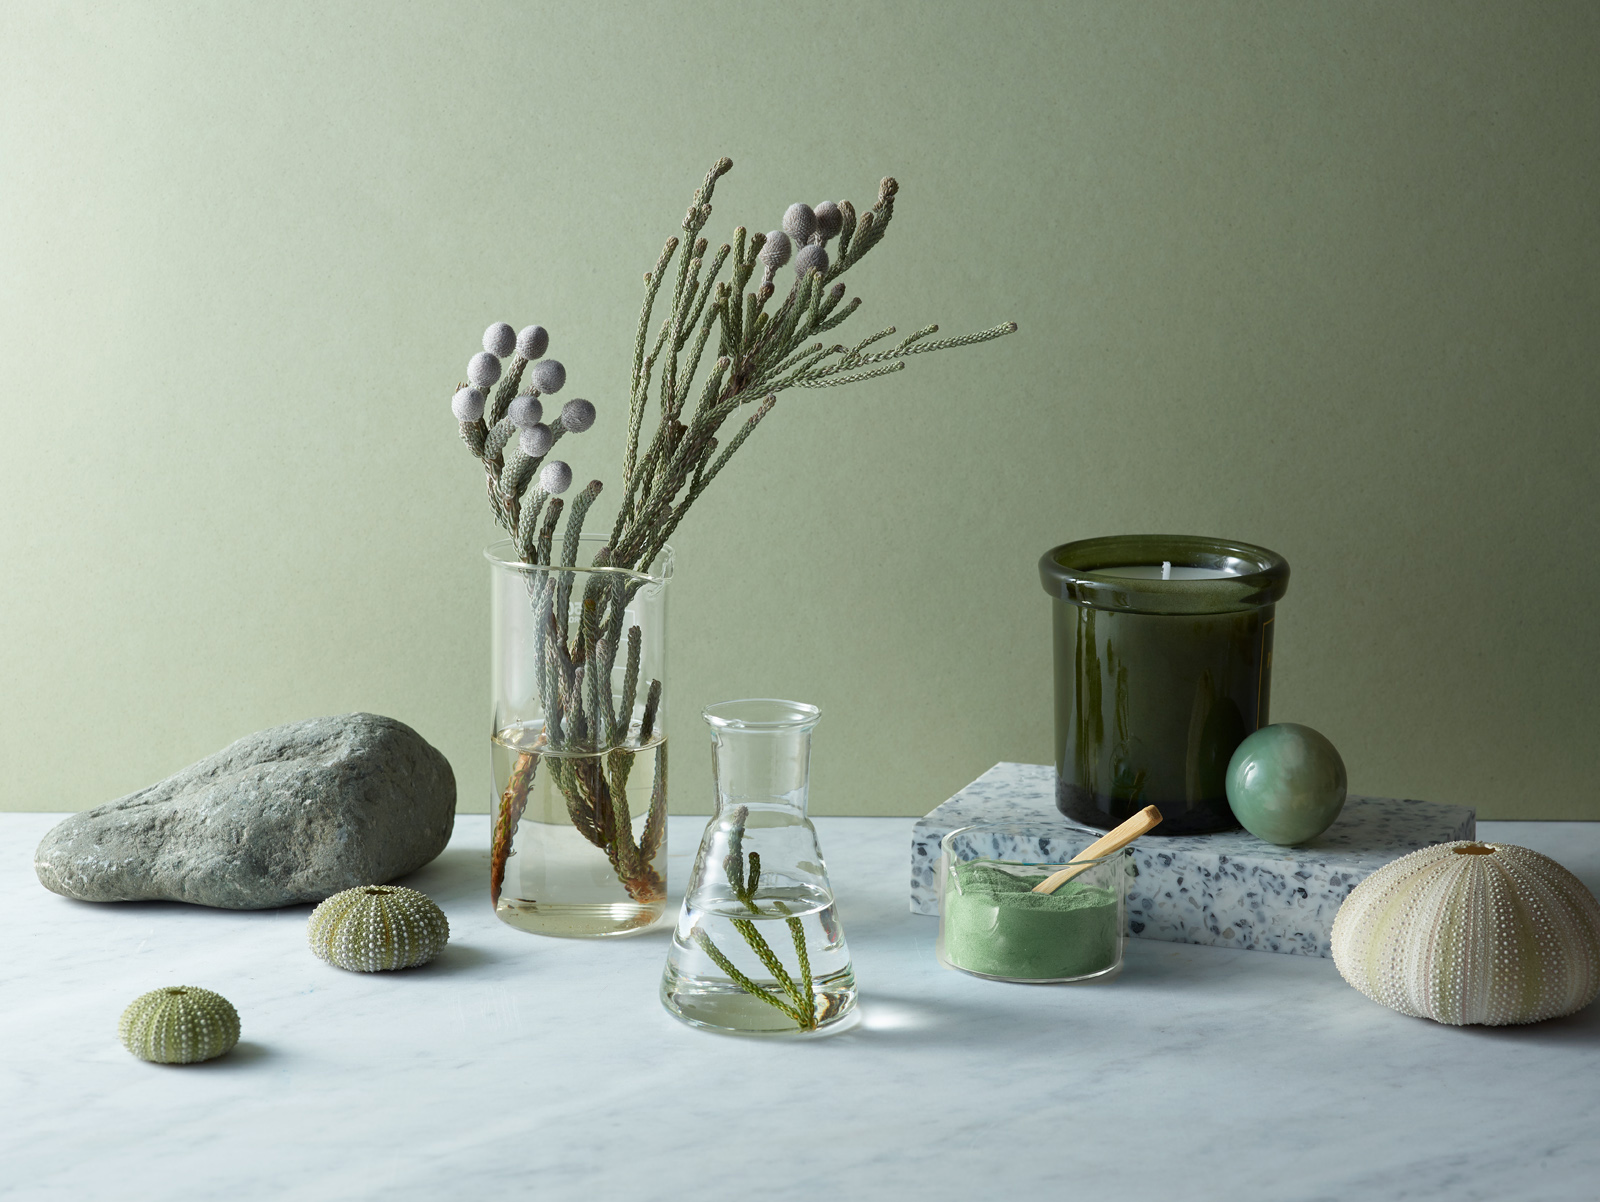 Still life photography with natural home decor